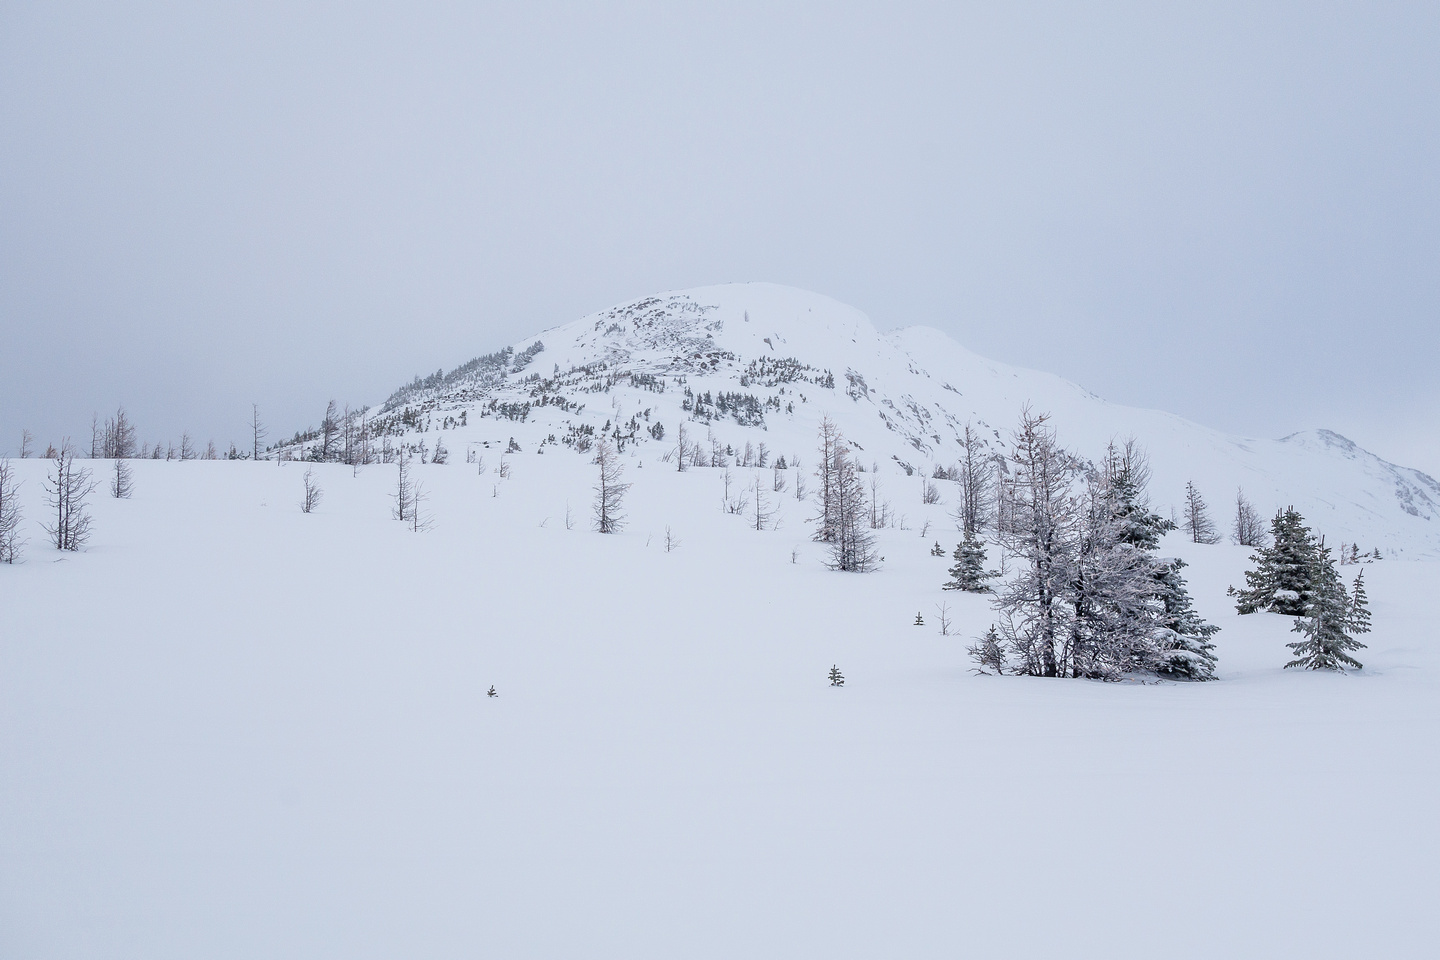 It's not looking like we're going to be able to ski to the summit or have any views again.